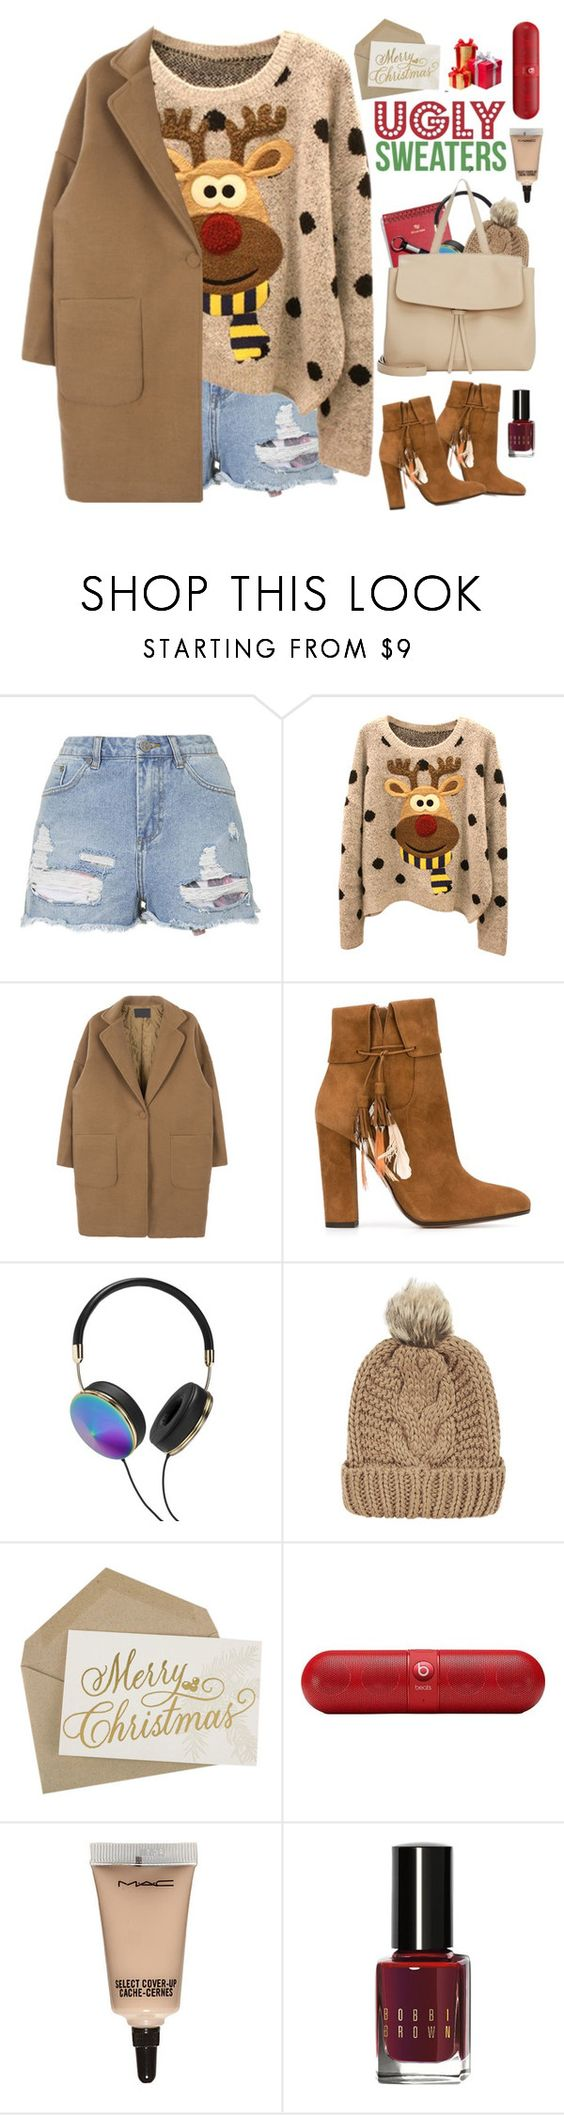 """""""2107. Ugly Sweater"""" by chocolatepumma ❤ liked on Polyvore featuring Topshop, Aquazzura, Frends, Chicnova Fashion, Beats by Dr. Dre, MAC Cosmetics and Bobbi Brown Cosmetics"""